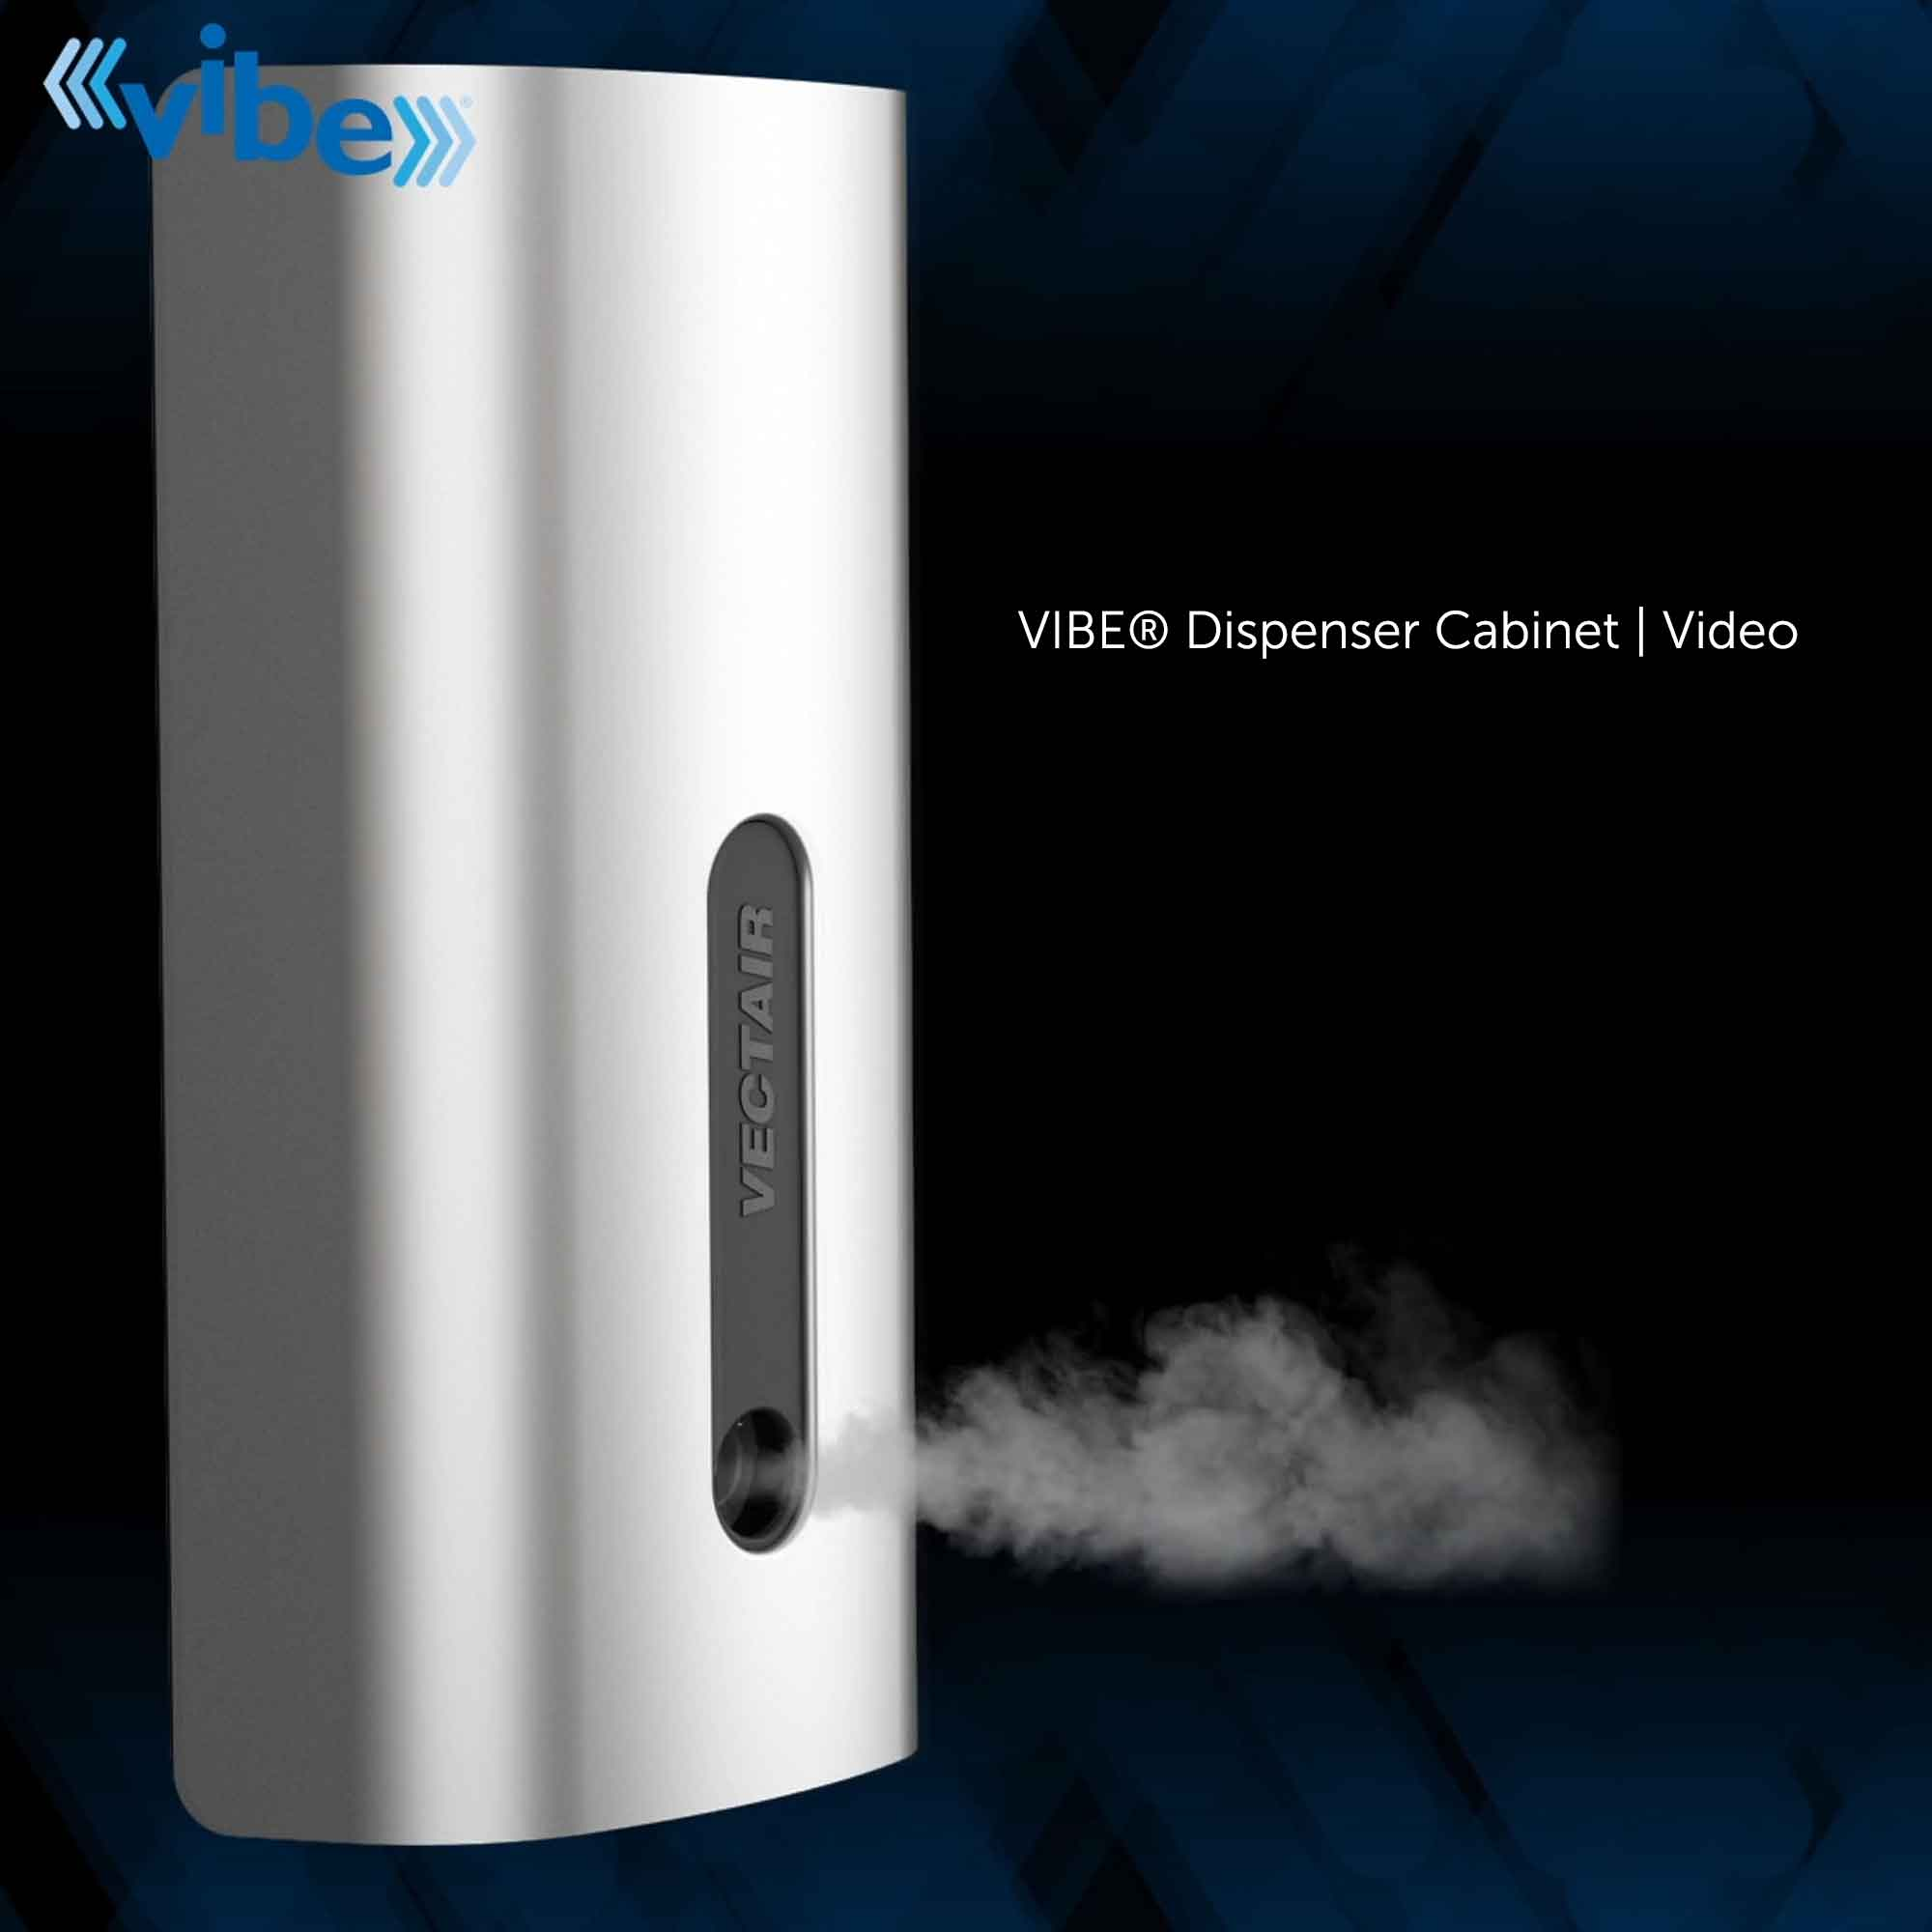 VIBE® Dispenser Cabinet | Video